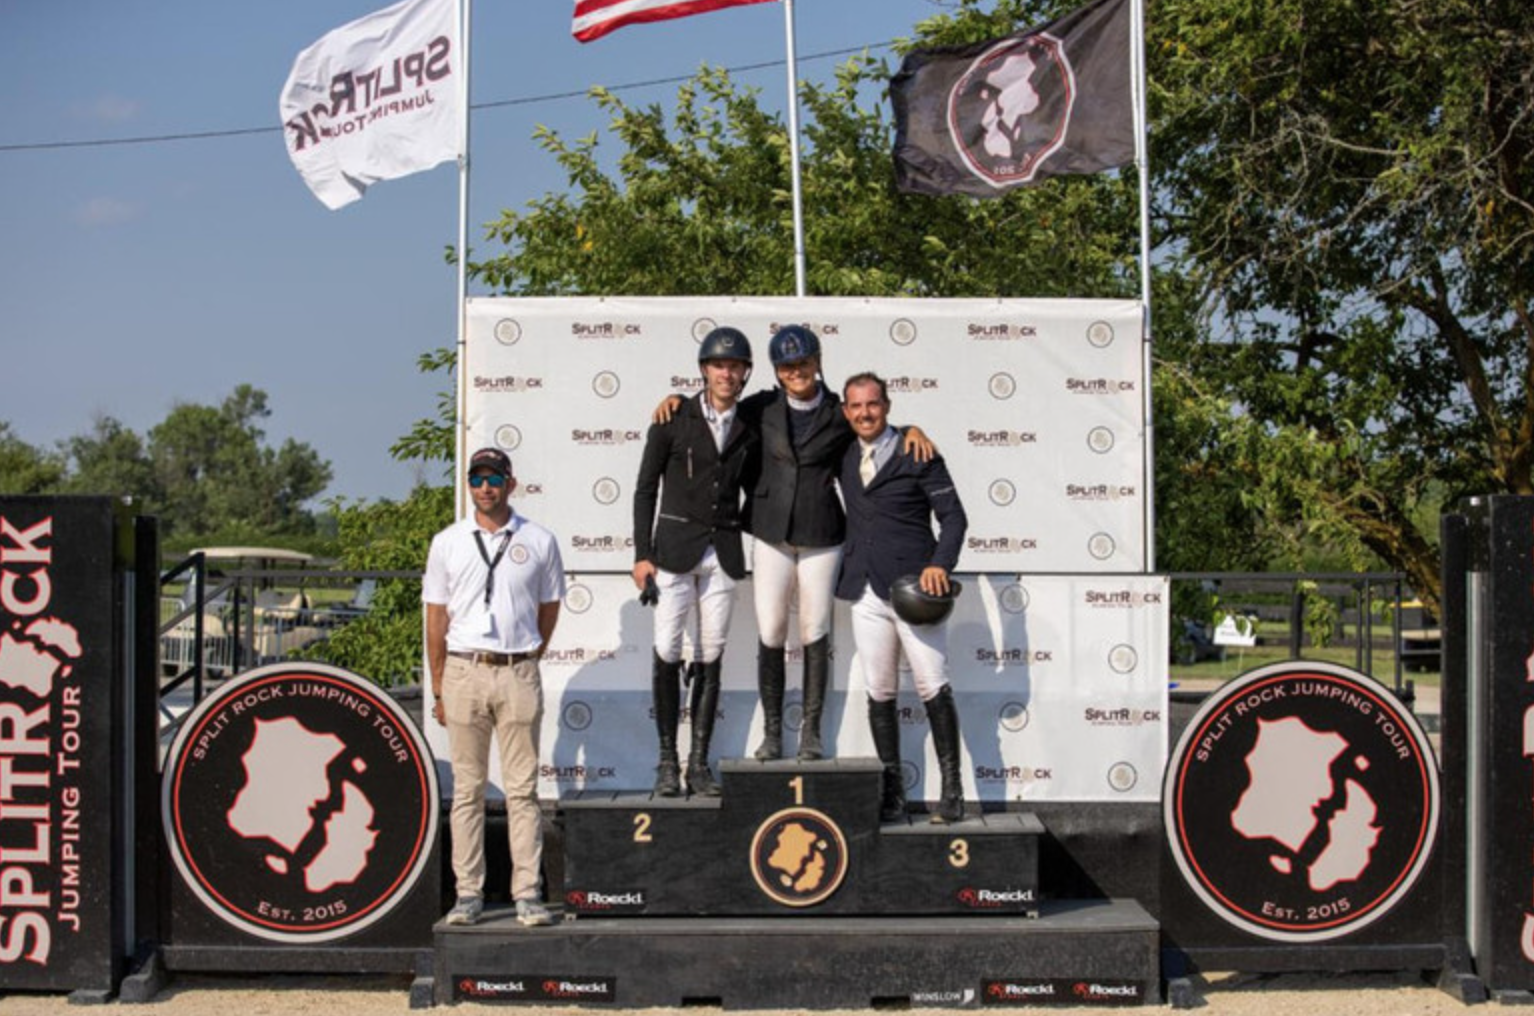 Kristen VanderVeen and Bull Run's Prince of Peace power to $50,000 1.50m Welcome CSI3* win at SRJT Hunter Jumper Classic II